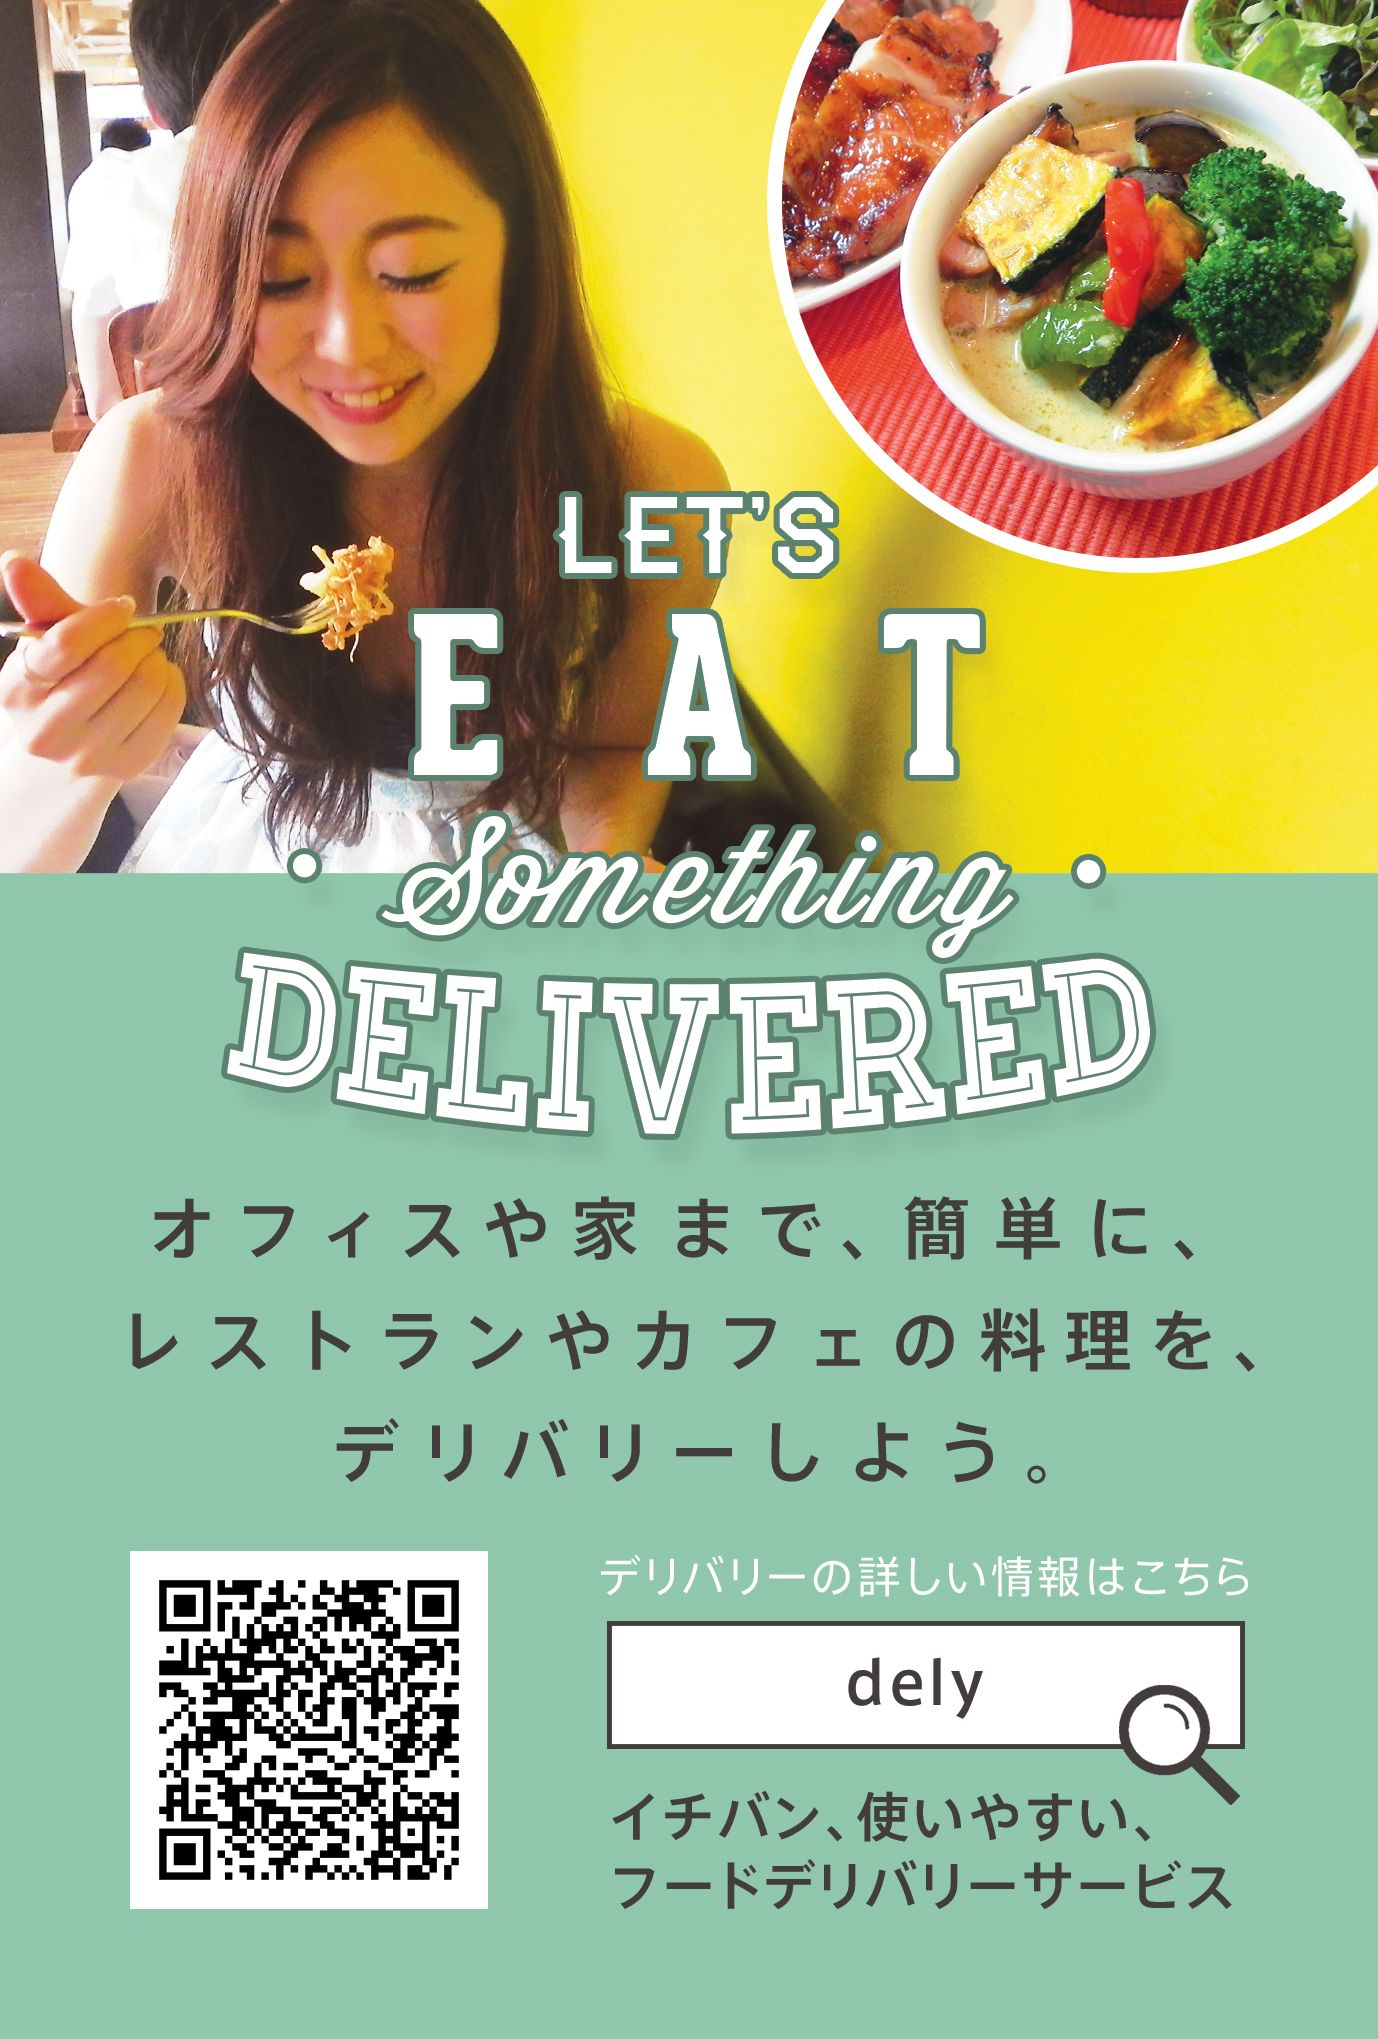 Flyer about food delivery service 19/One design a day | Flyer ...